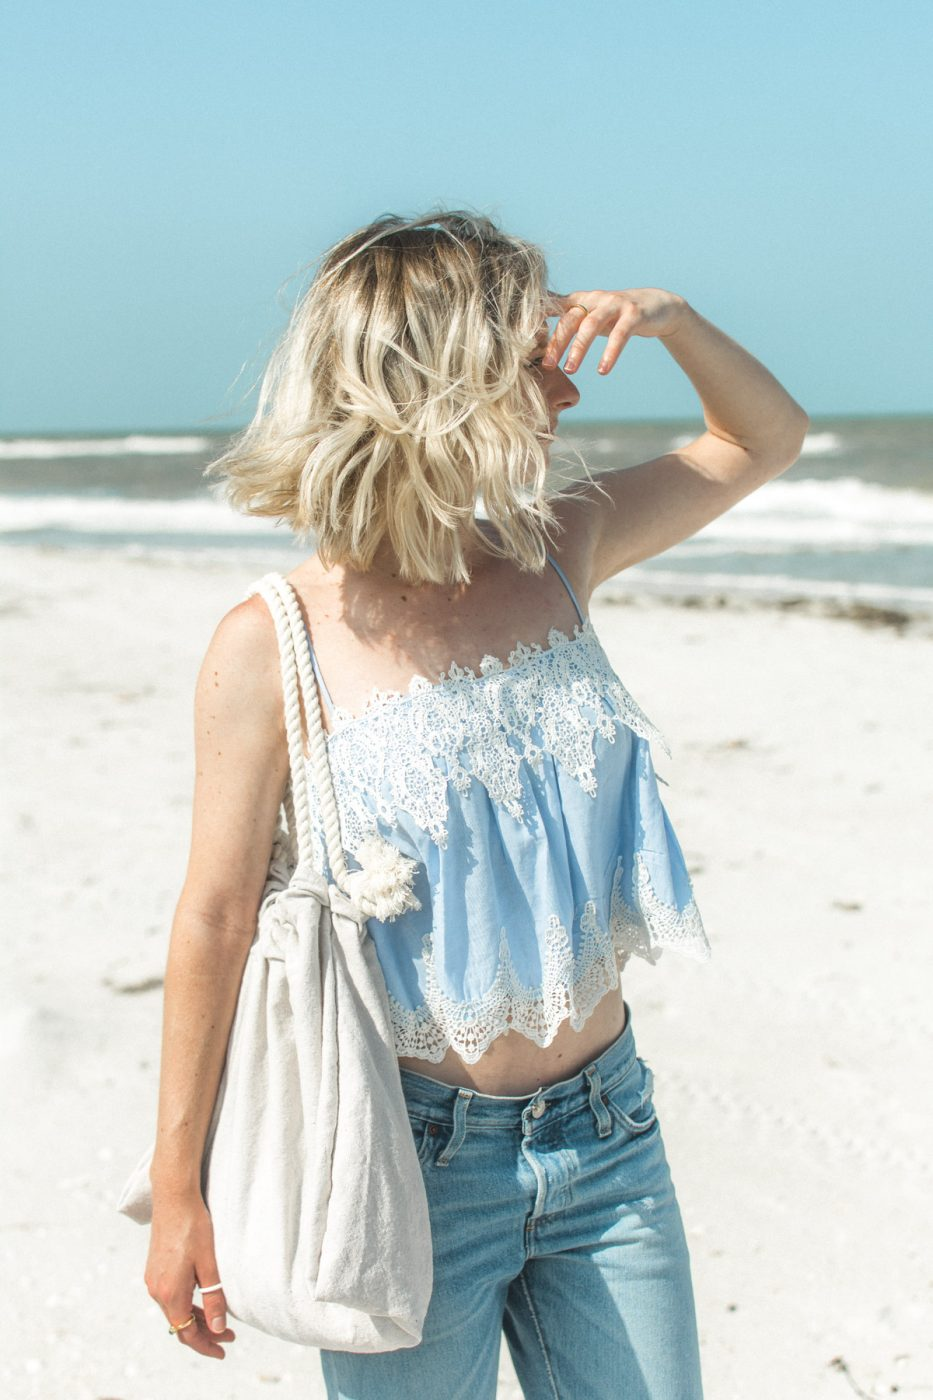 Jenny of Sweet Teal wearing jeans on the beach